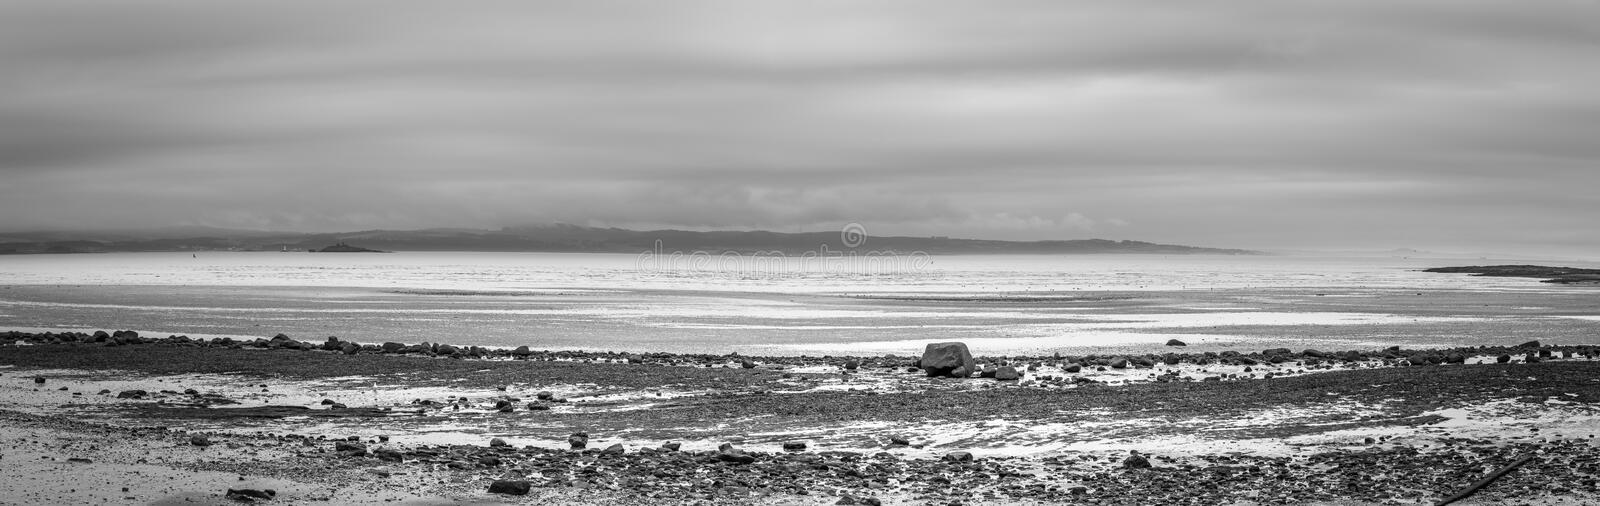 A view of firth estuary and the sea from the Cramond to Grant Harbour coastal footpath royalty free stock photo